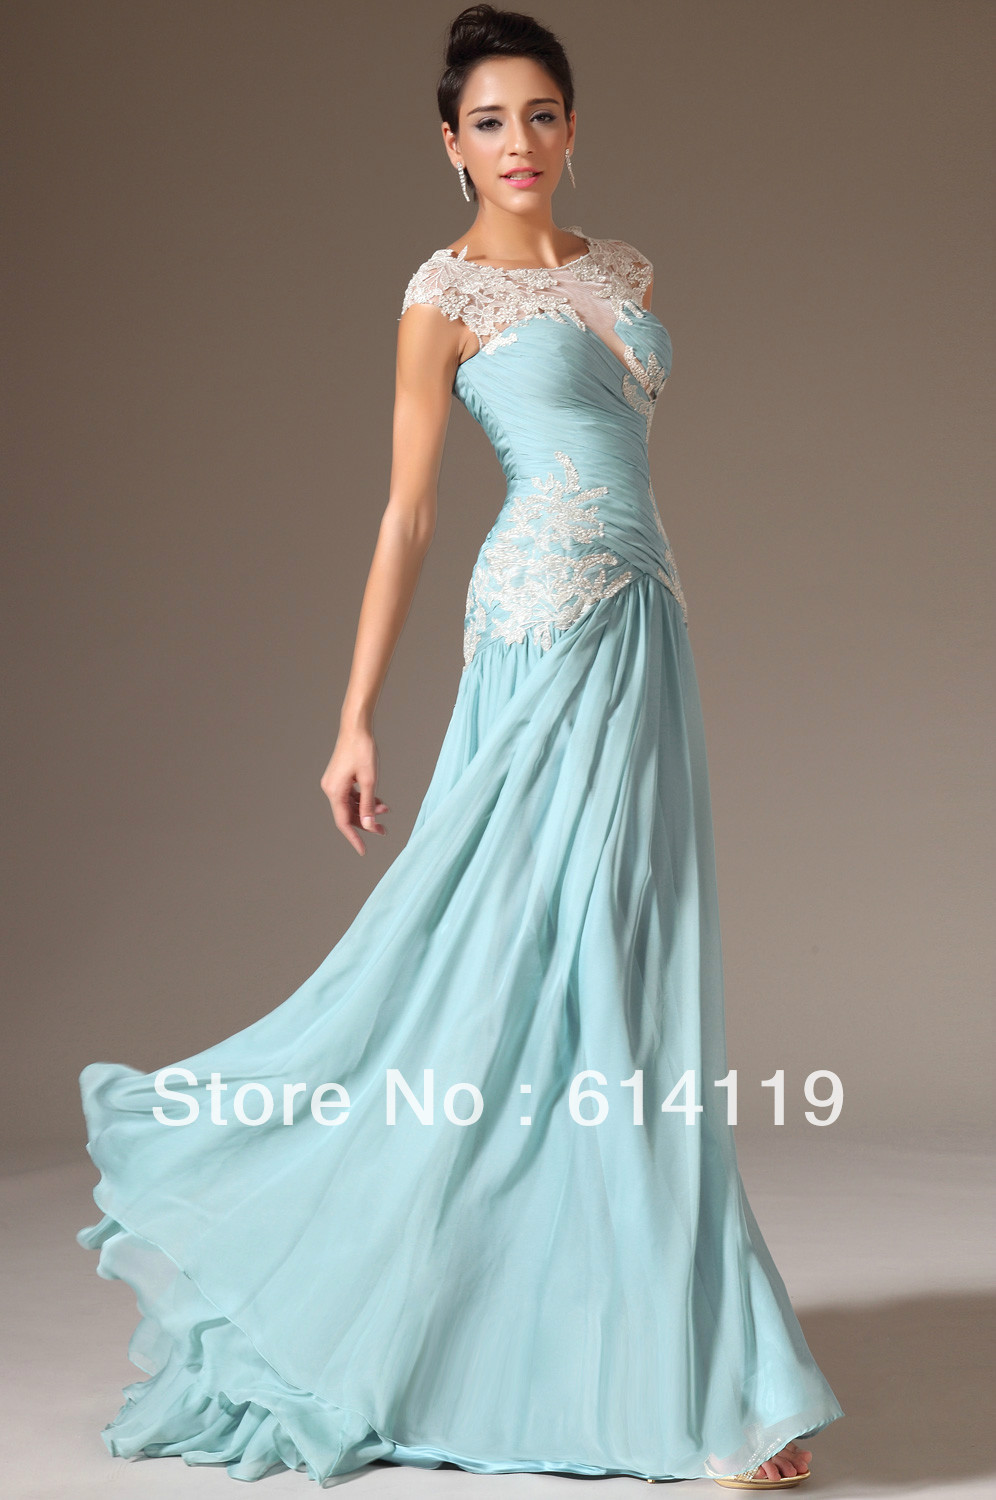 formal dresses australia | Dress images